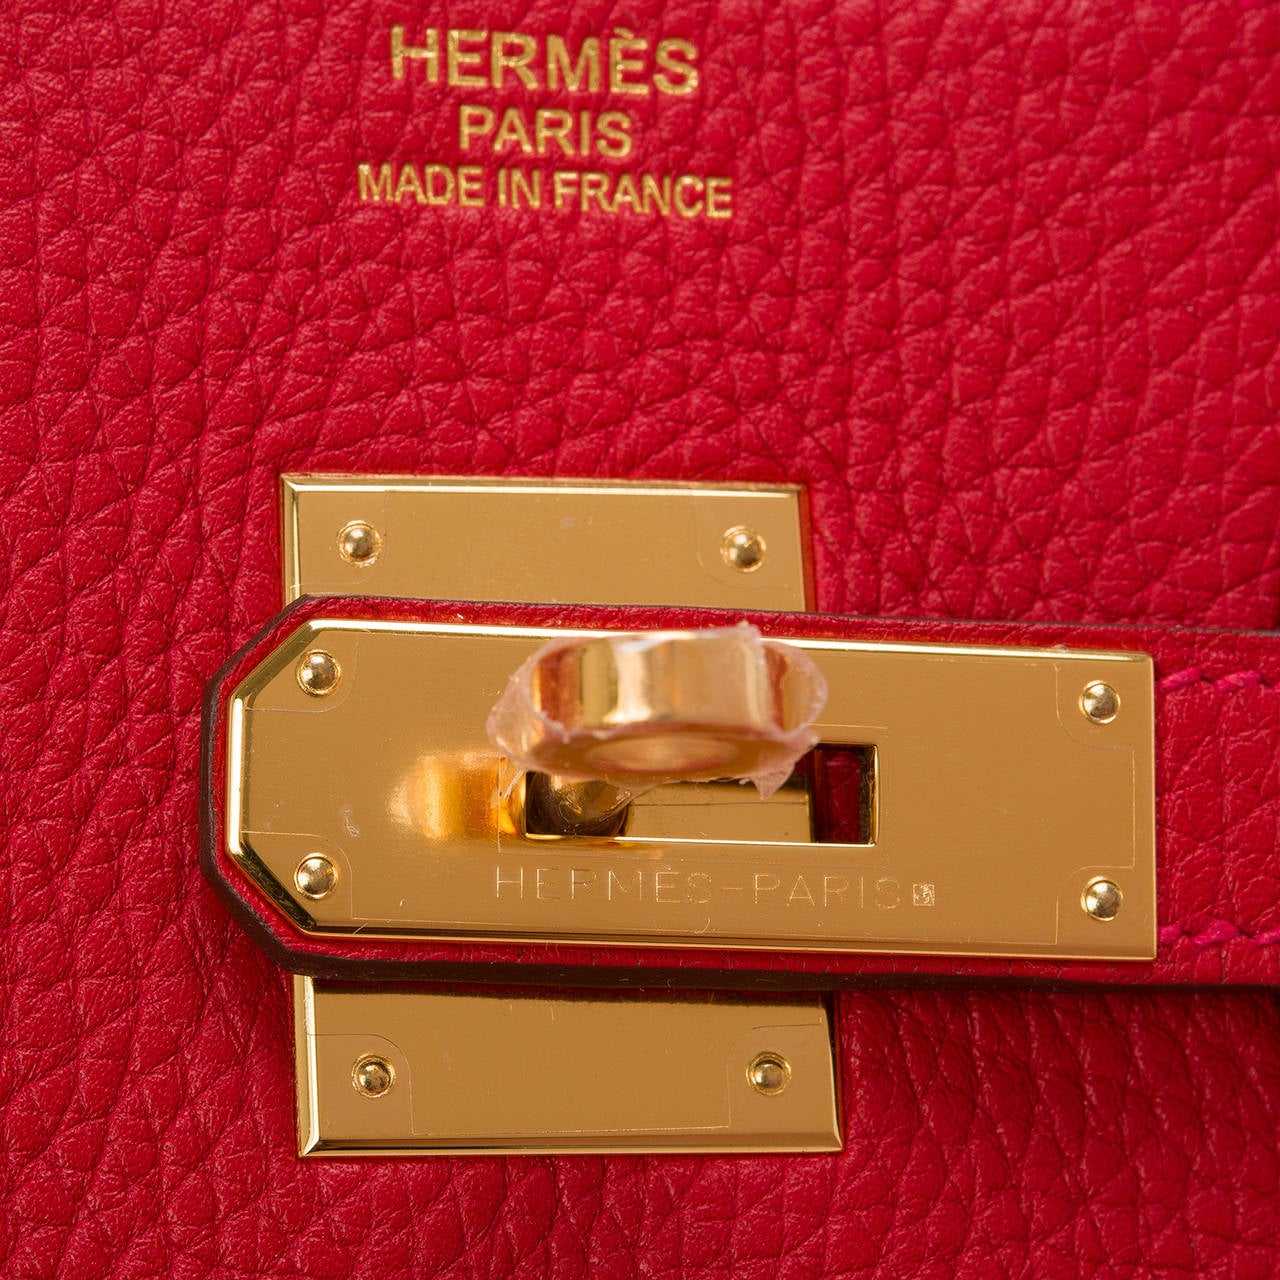 hermes travel bag - Hermes Rouge Casaque Birkin 35cm Gold Hardware at 1stdibs